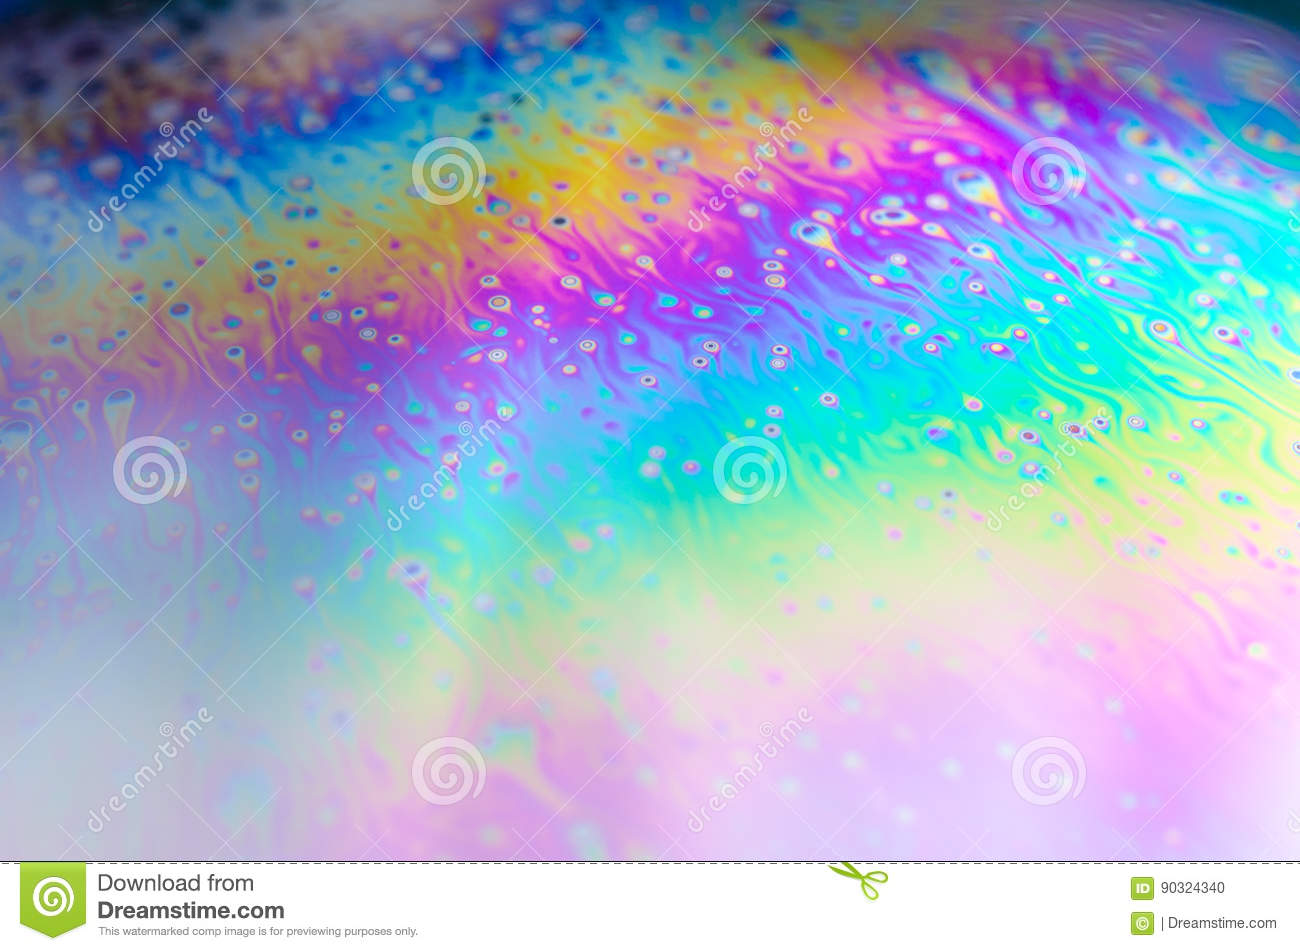 Beautiful psychedelic abstractions in soap foam